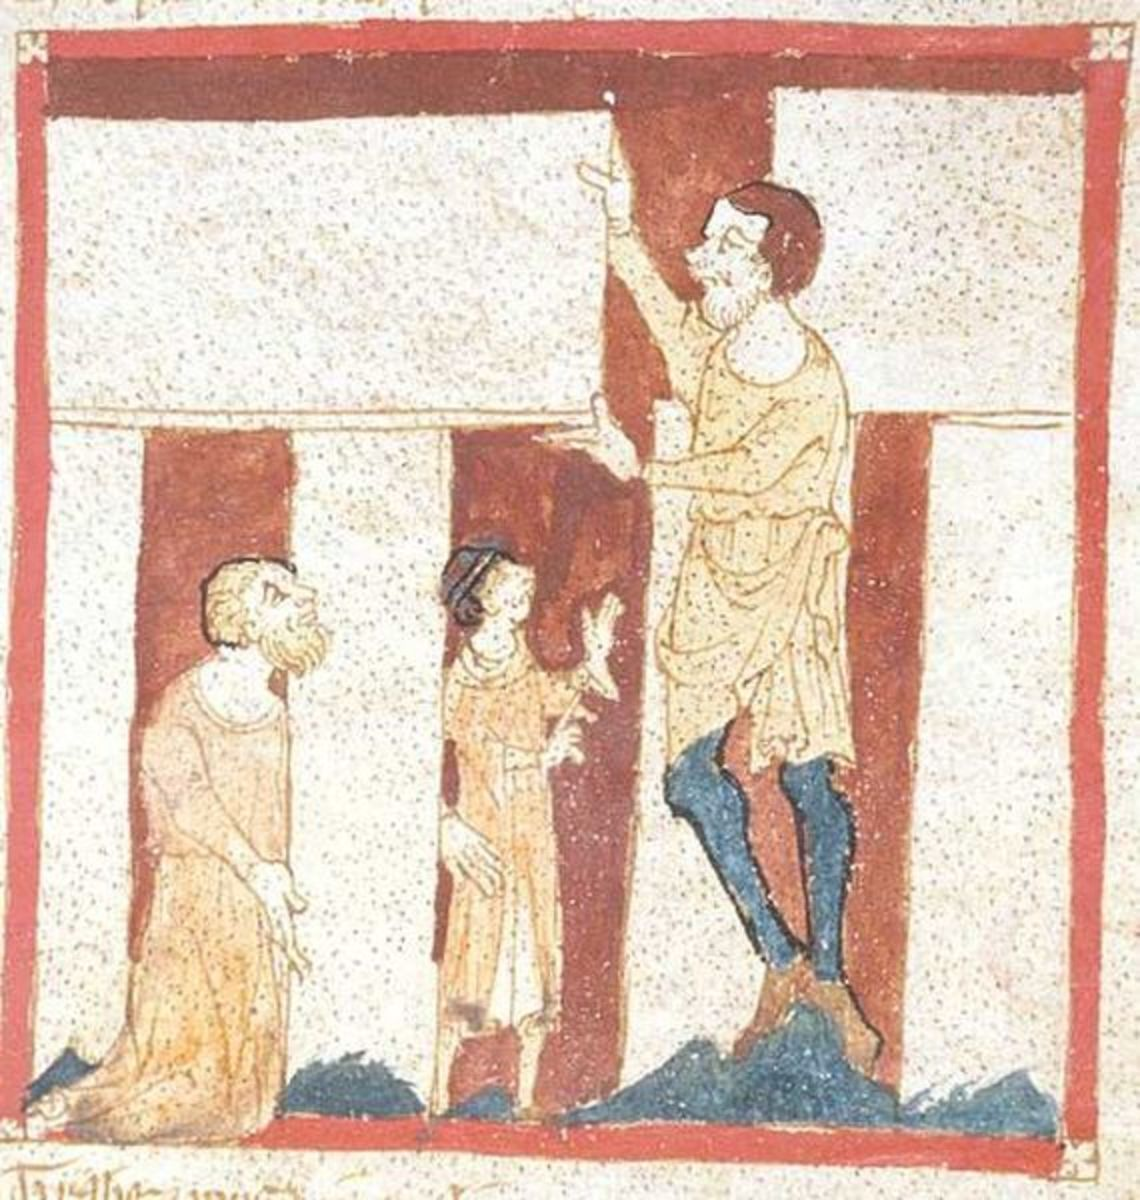 Merlin builds Stonhenge with the help of a giant. From a manuscript of the Roman de Brut by Wace (British Library, Egerton 3208)